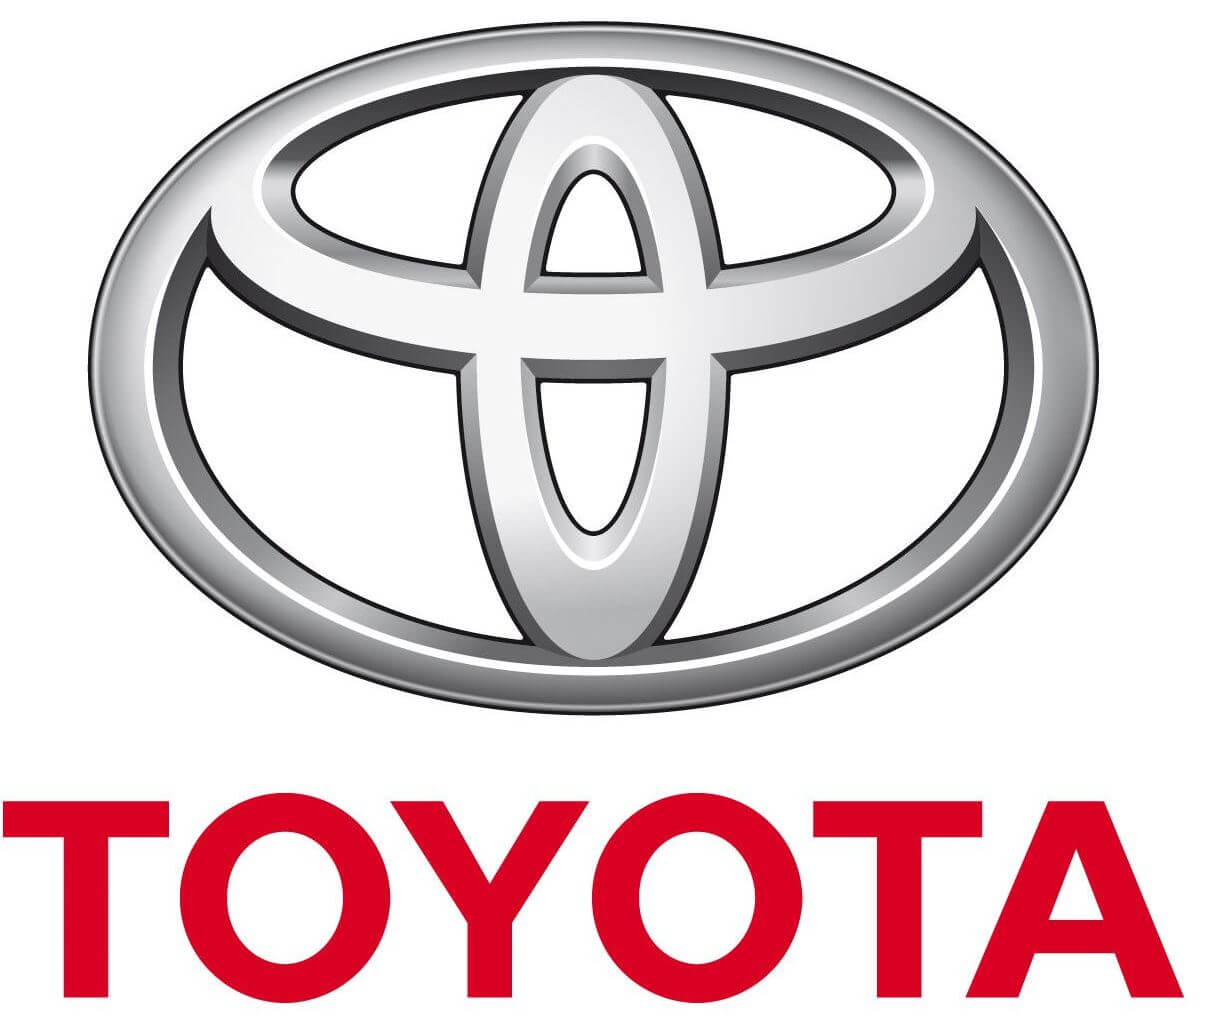 Toyota Is The Most Valuable Car Brand In The World